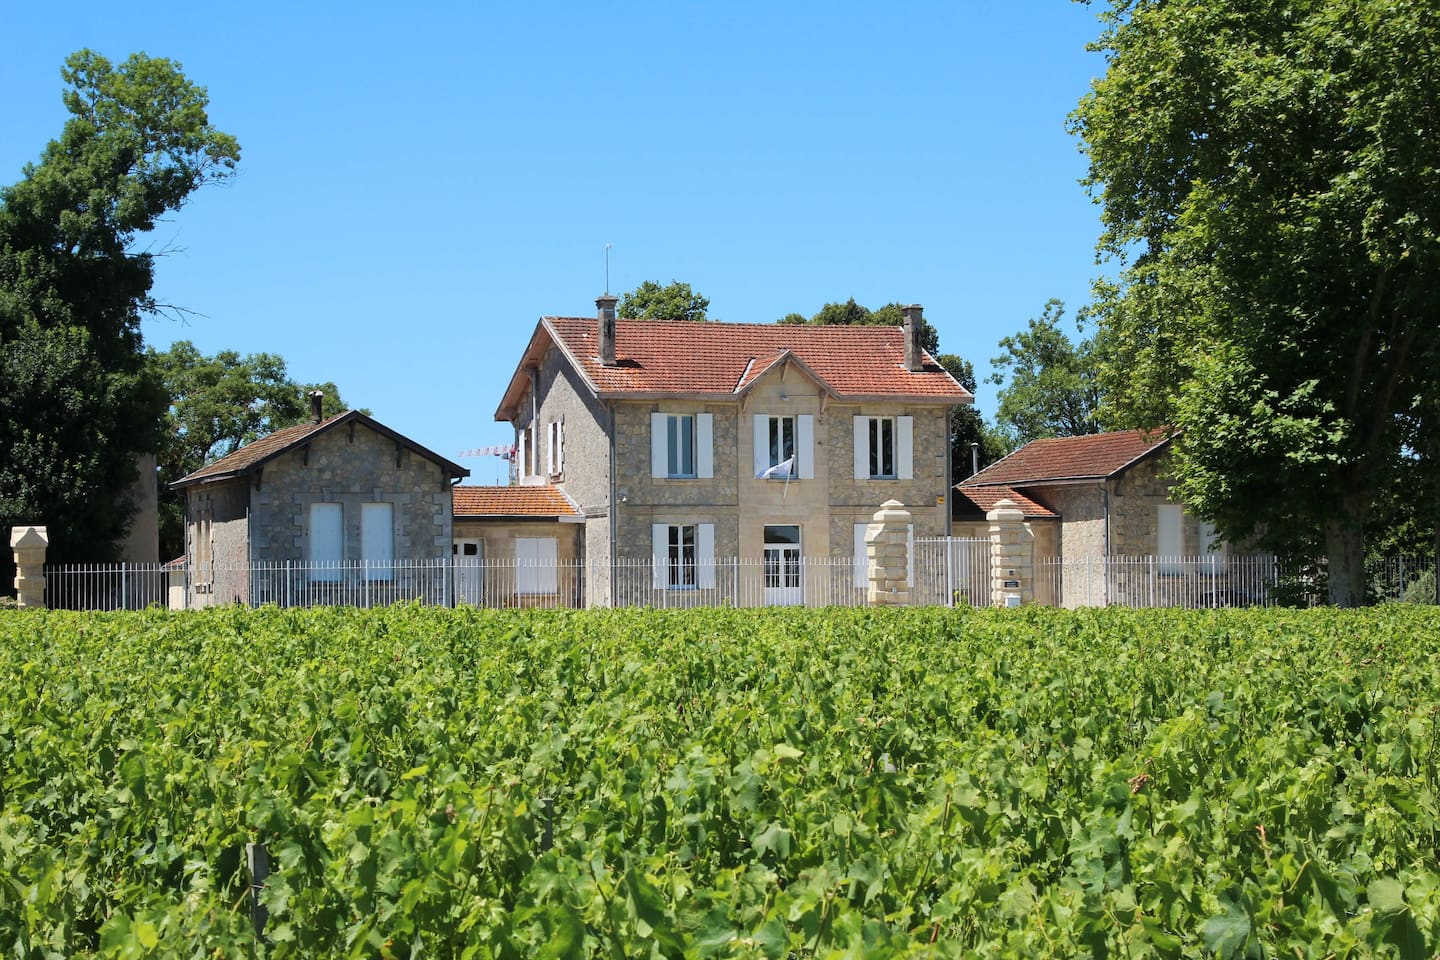 The Frontage of Manoir Saussus from the Chateau Lynch-Bages Vineyard